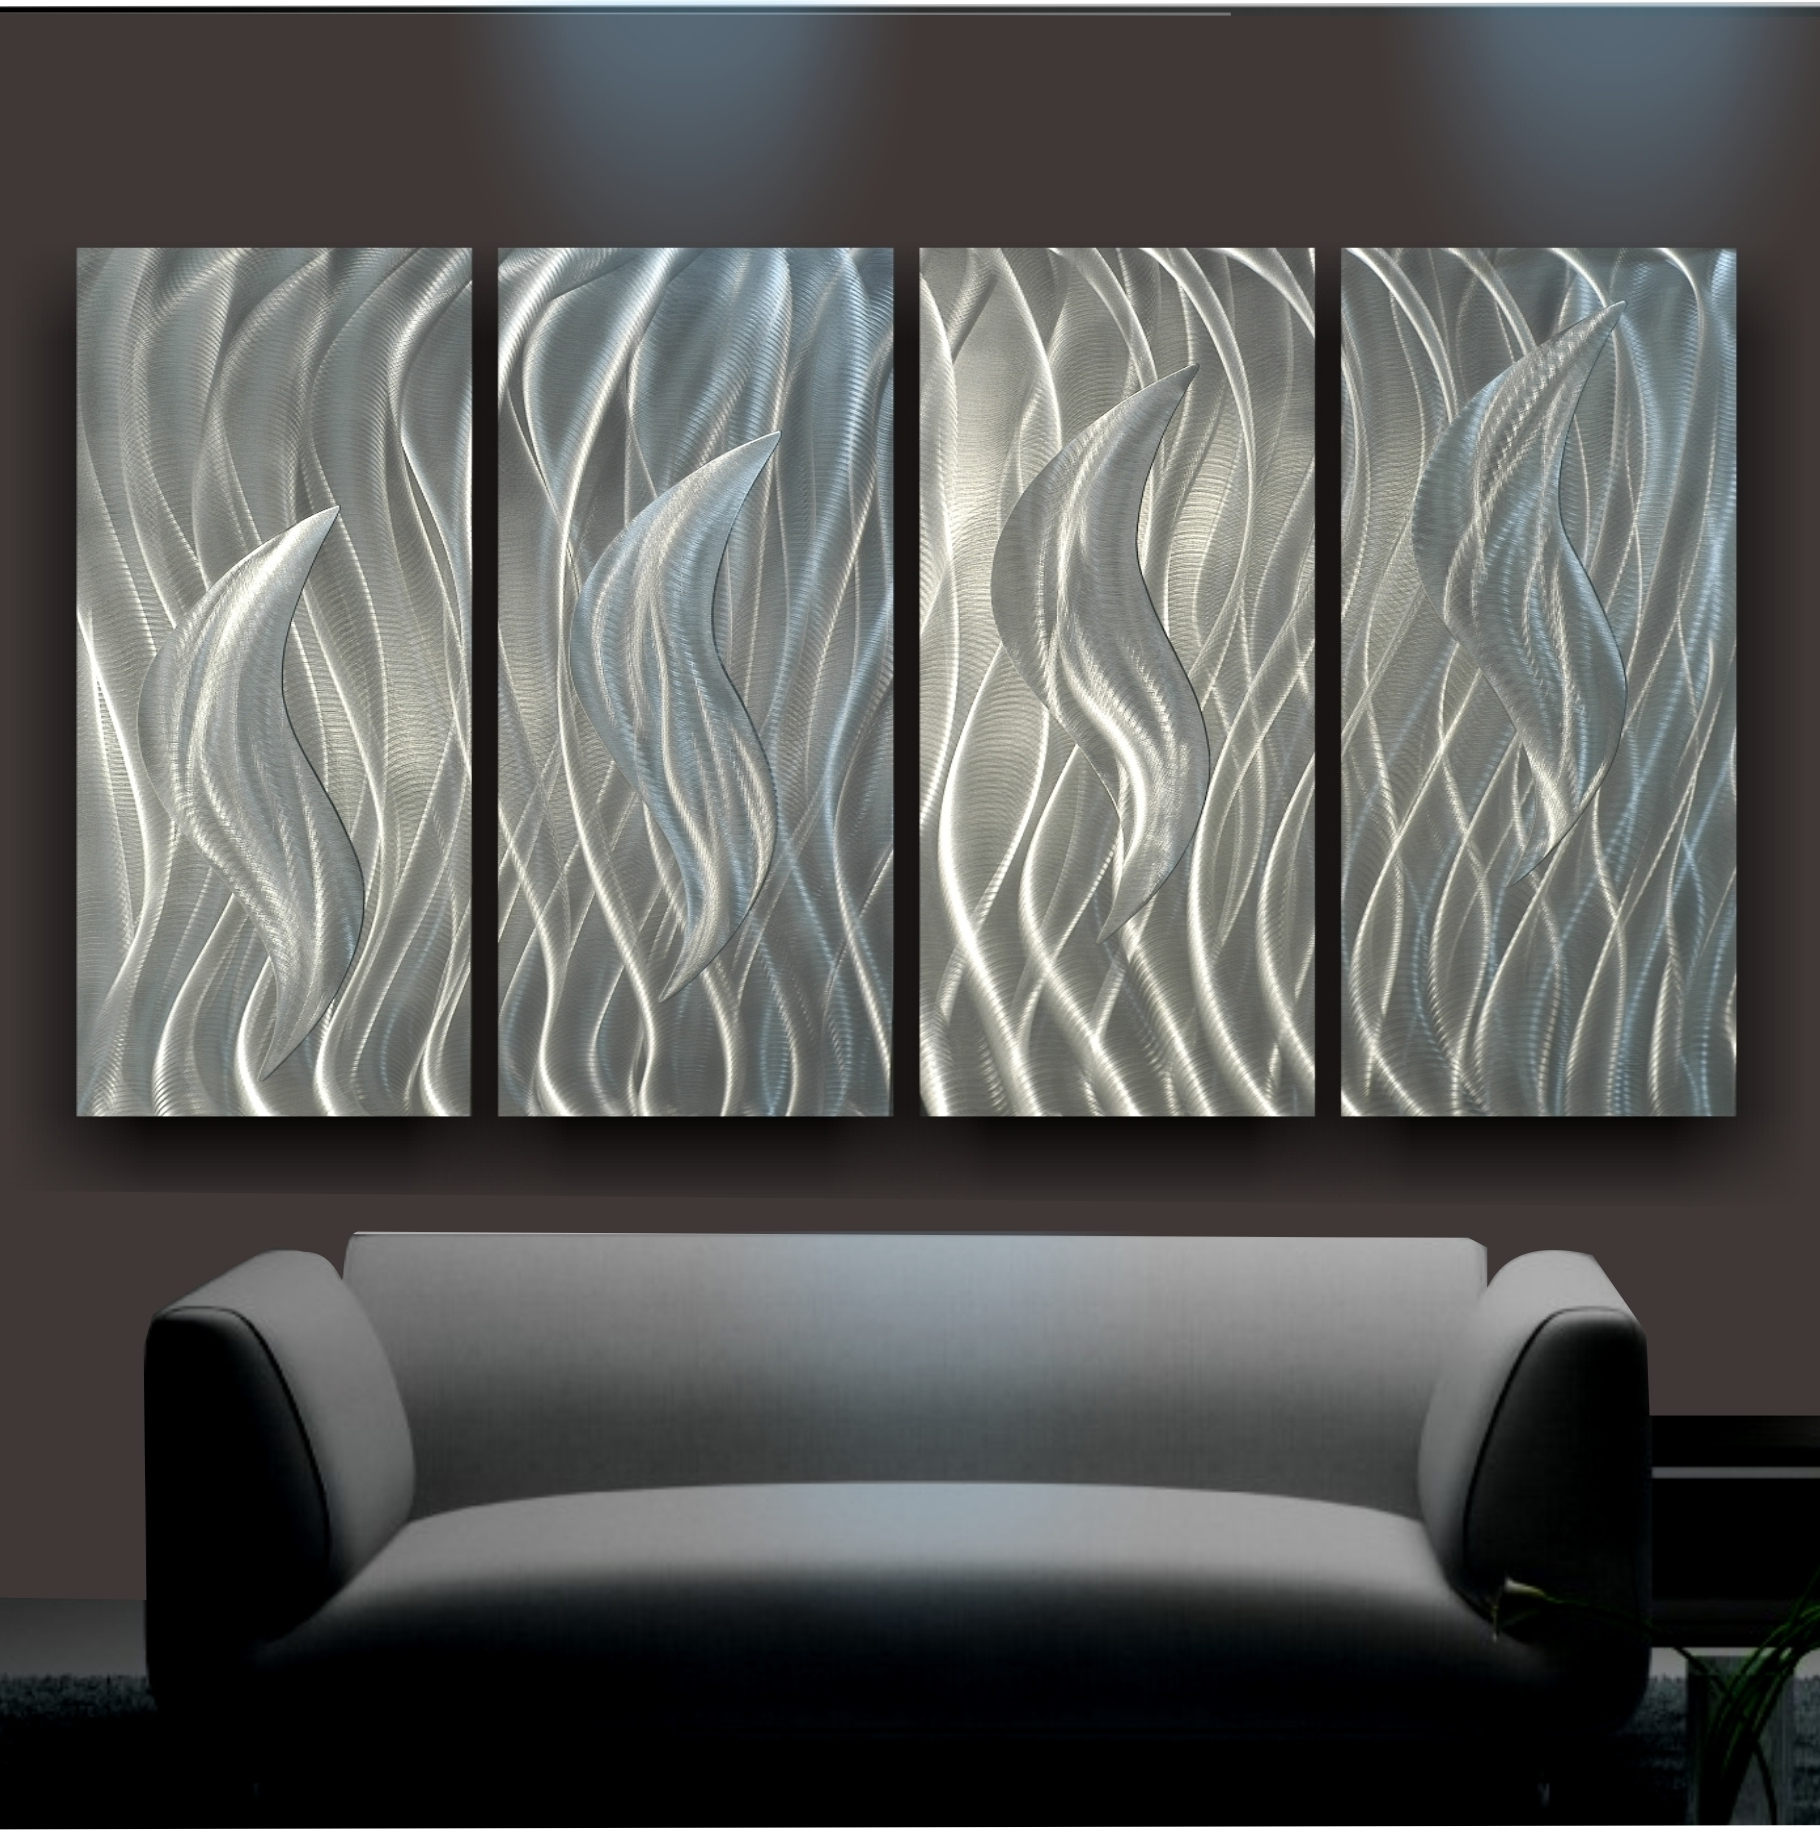 Steel Wall Surface Fine Art Is A Contemporary Sort Of Art Work Intended For Popular Abstract Aluminium Wall Art (View 14 of 15)